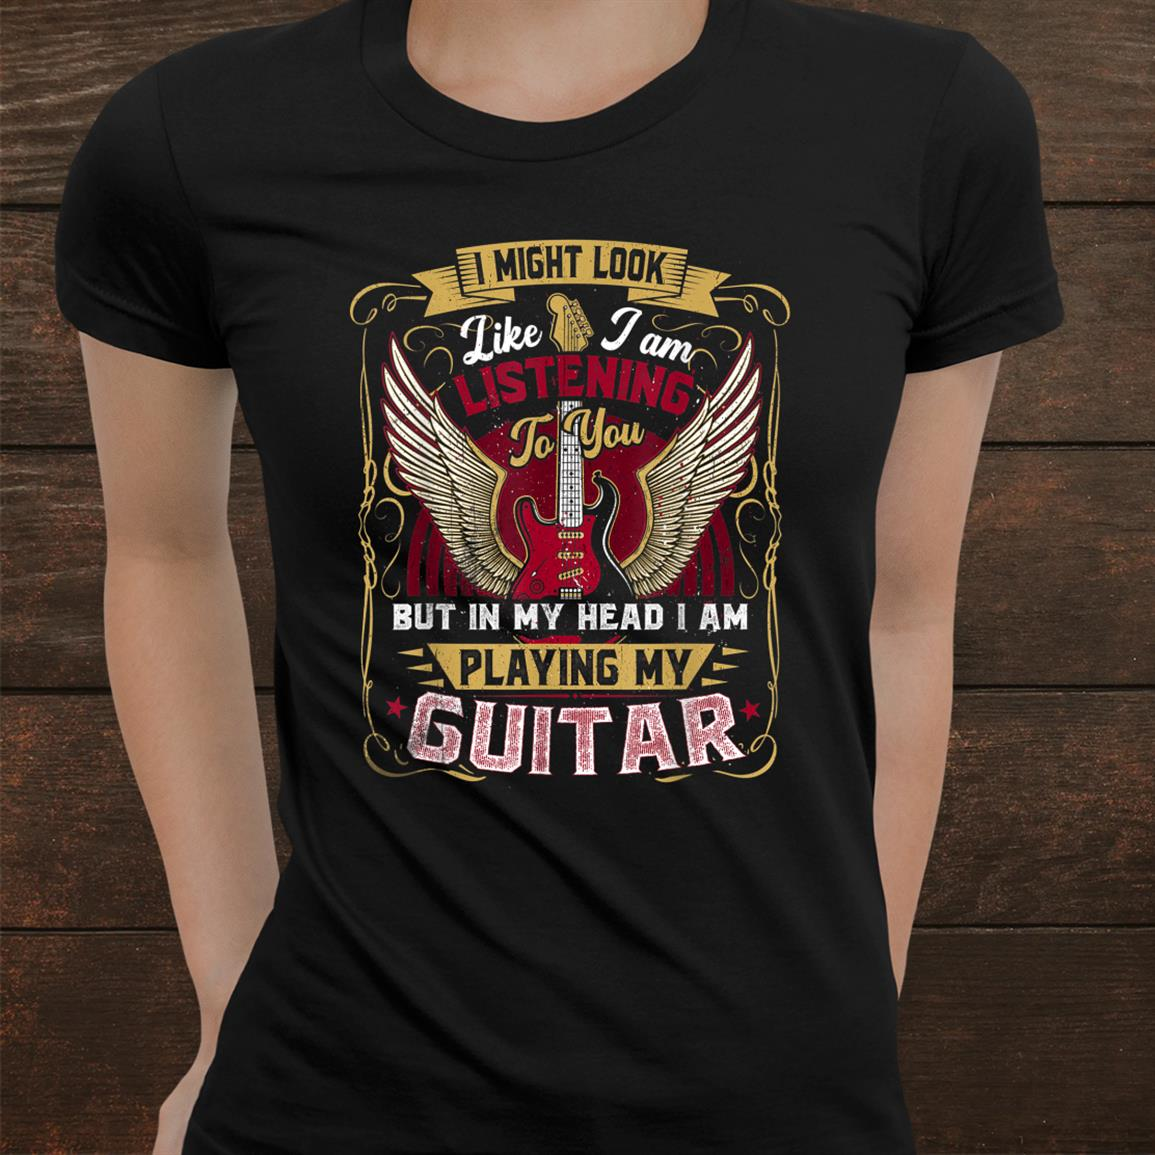 I Might Look Like I'm Listening To You Funny Guitar Music Shirt